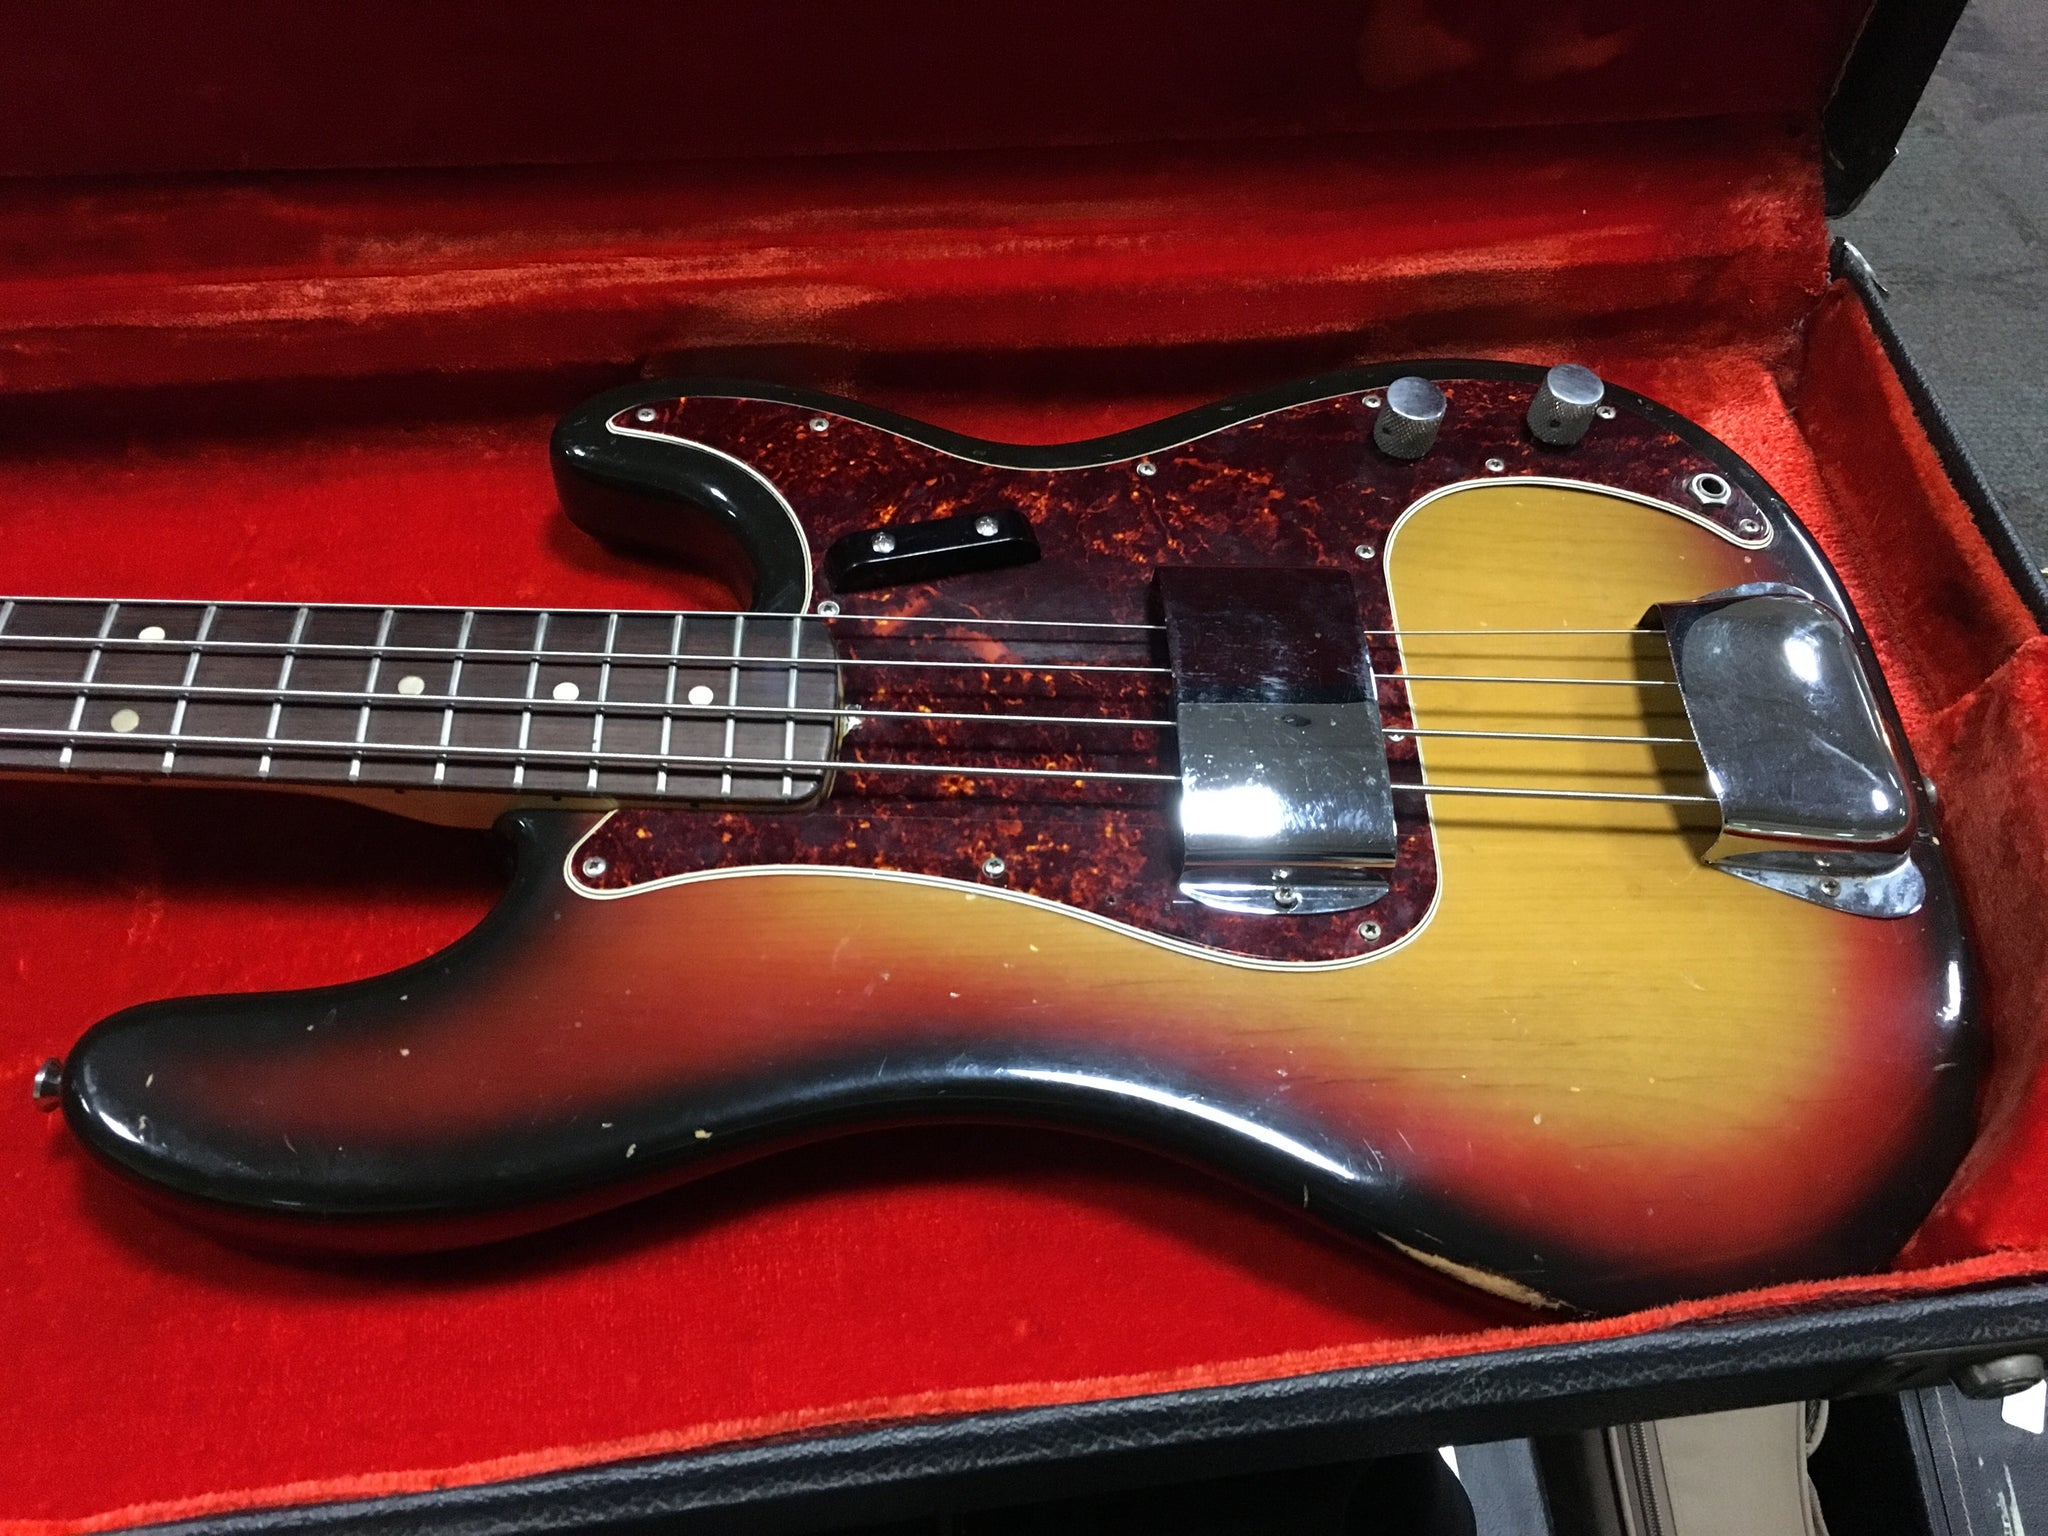 ****SOLD**** 1971 Fender Precision Bass